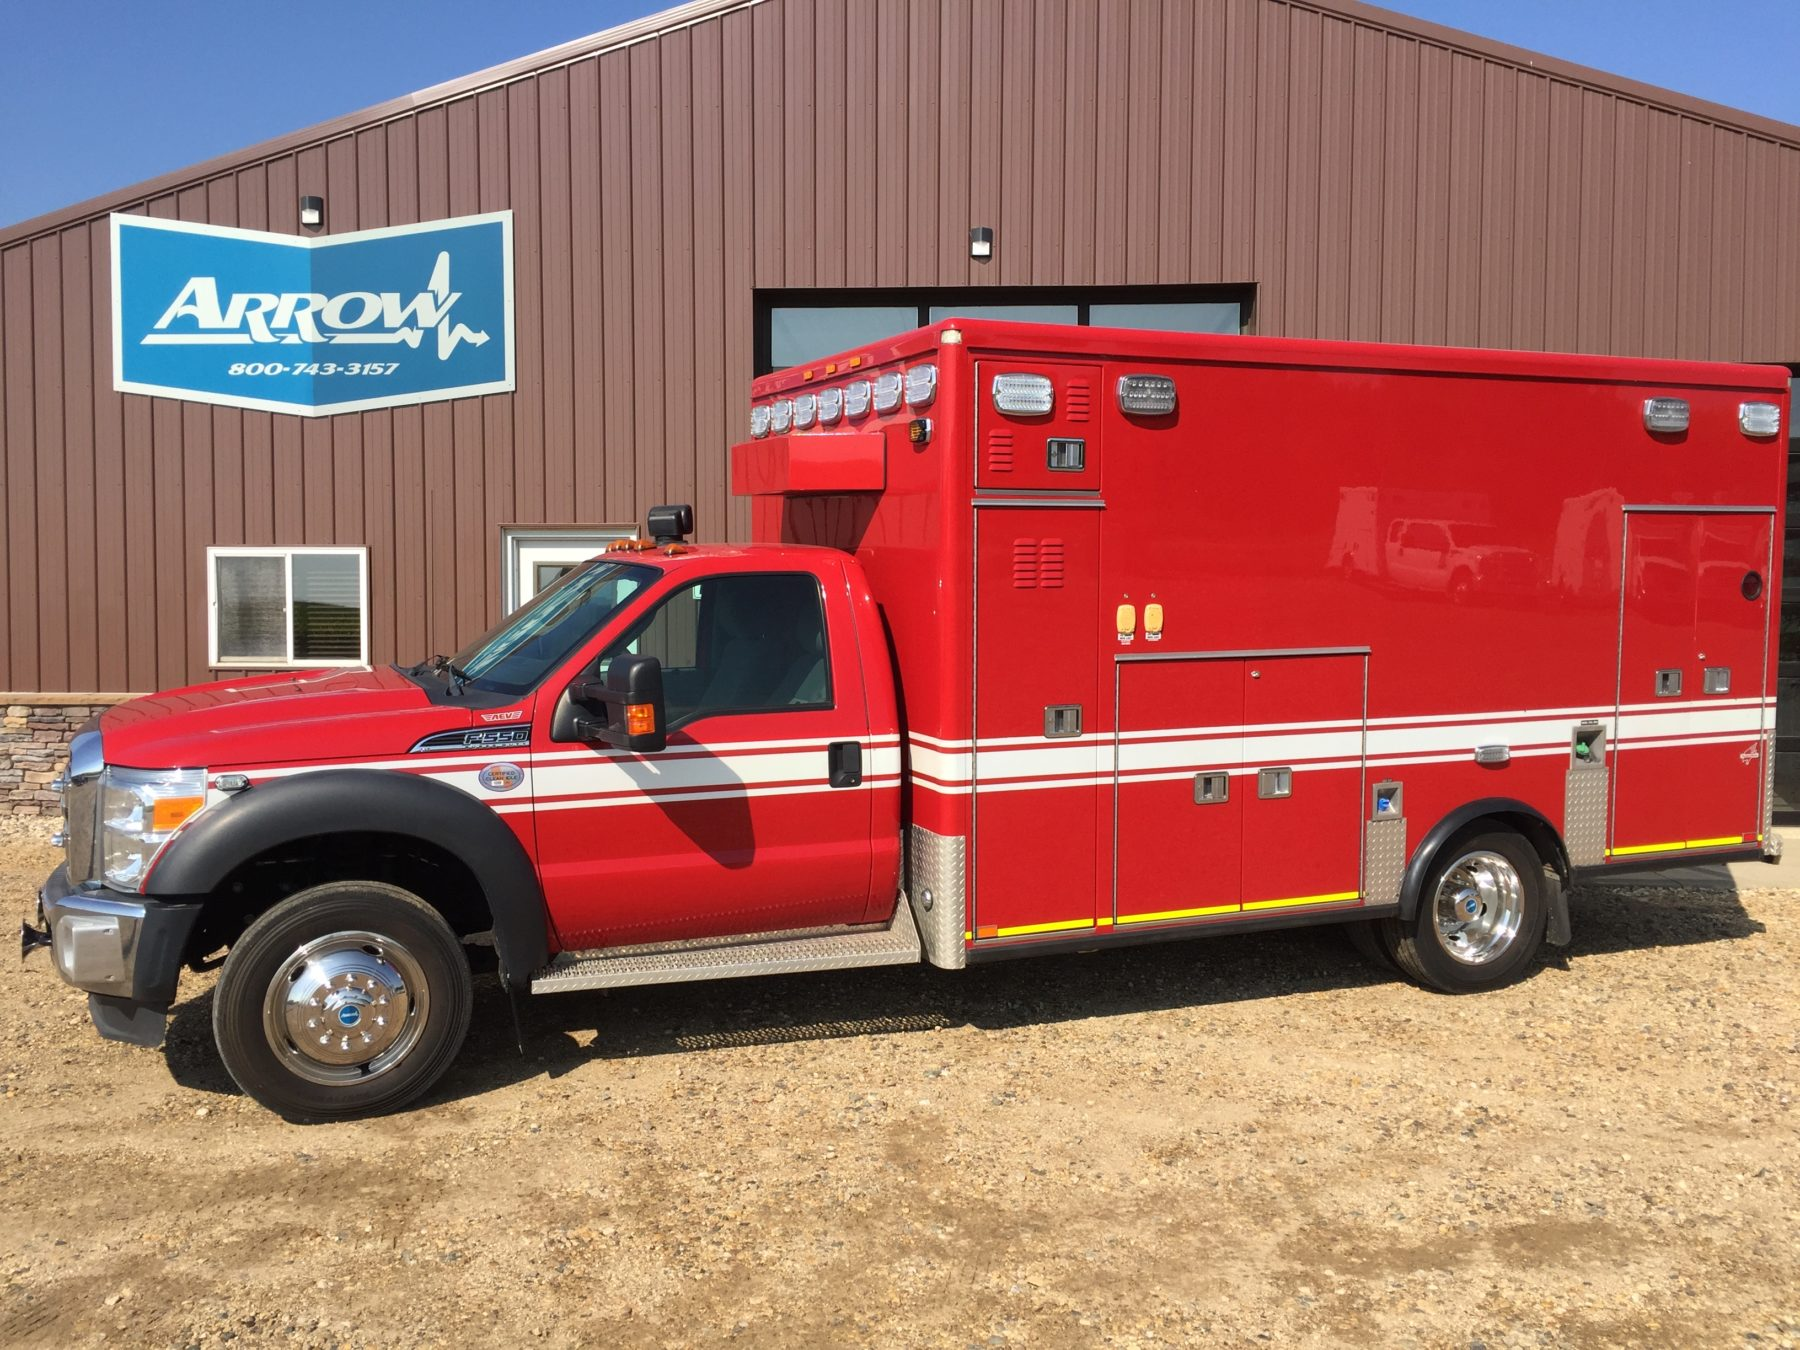 2012 Ford F550 4x4 Heavy Duty Ambulance For Sale – Picture 1